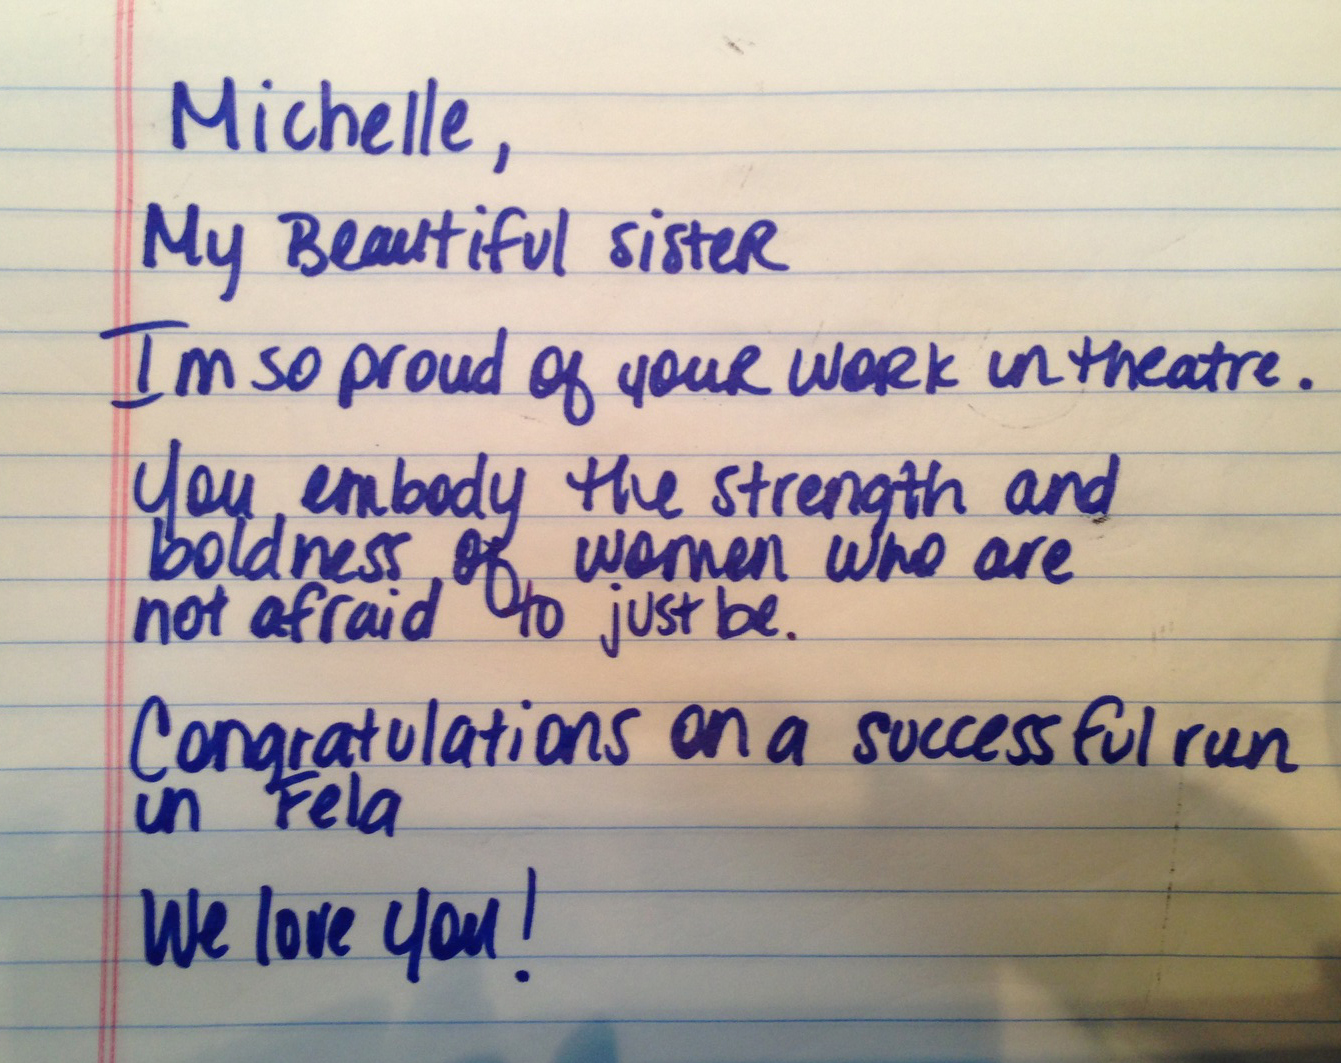 Lovely letter from Beyonce to Michelle Williams